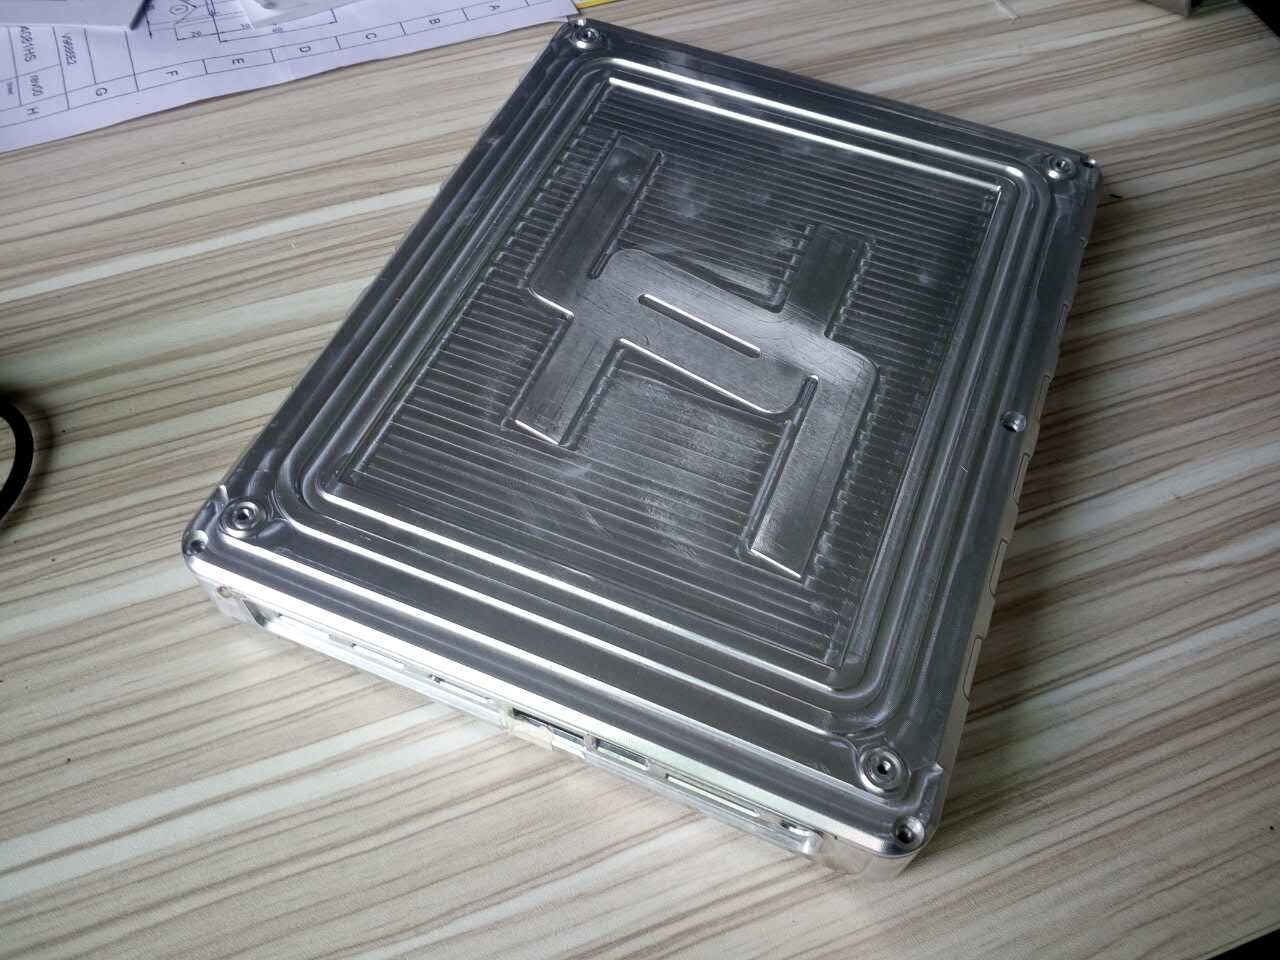 Aluminum Alloy CNC Machining Part, Metal Fabrication